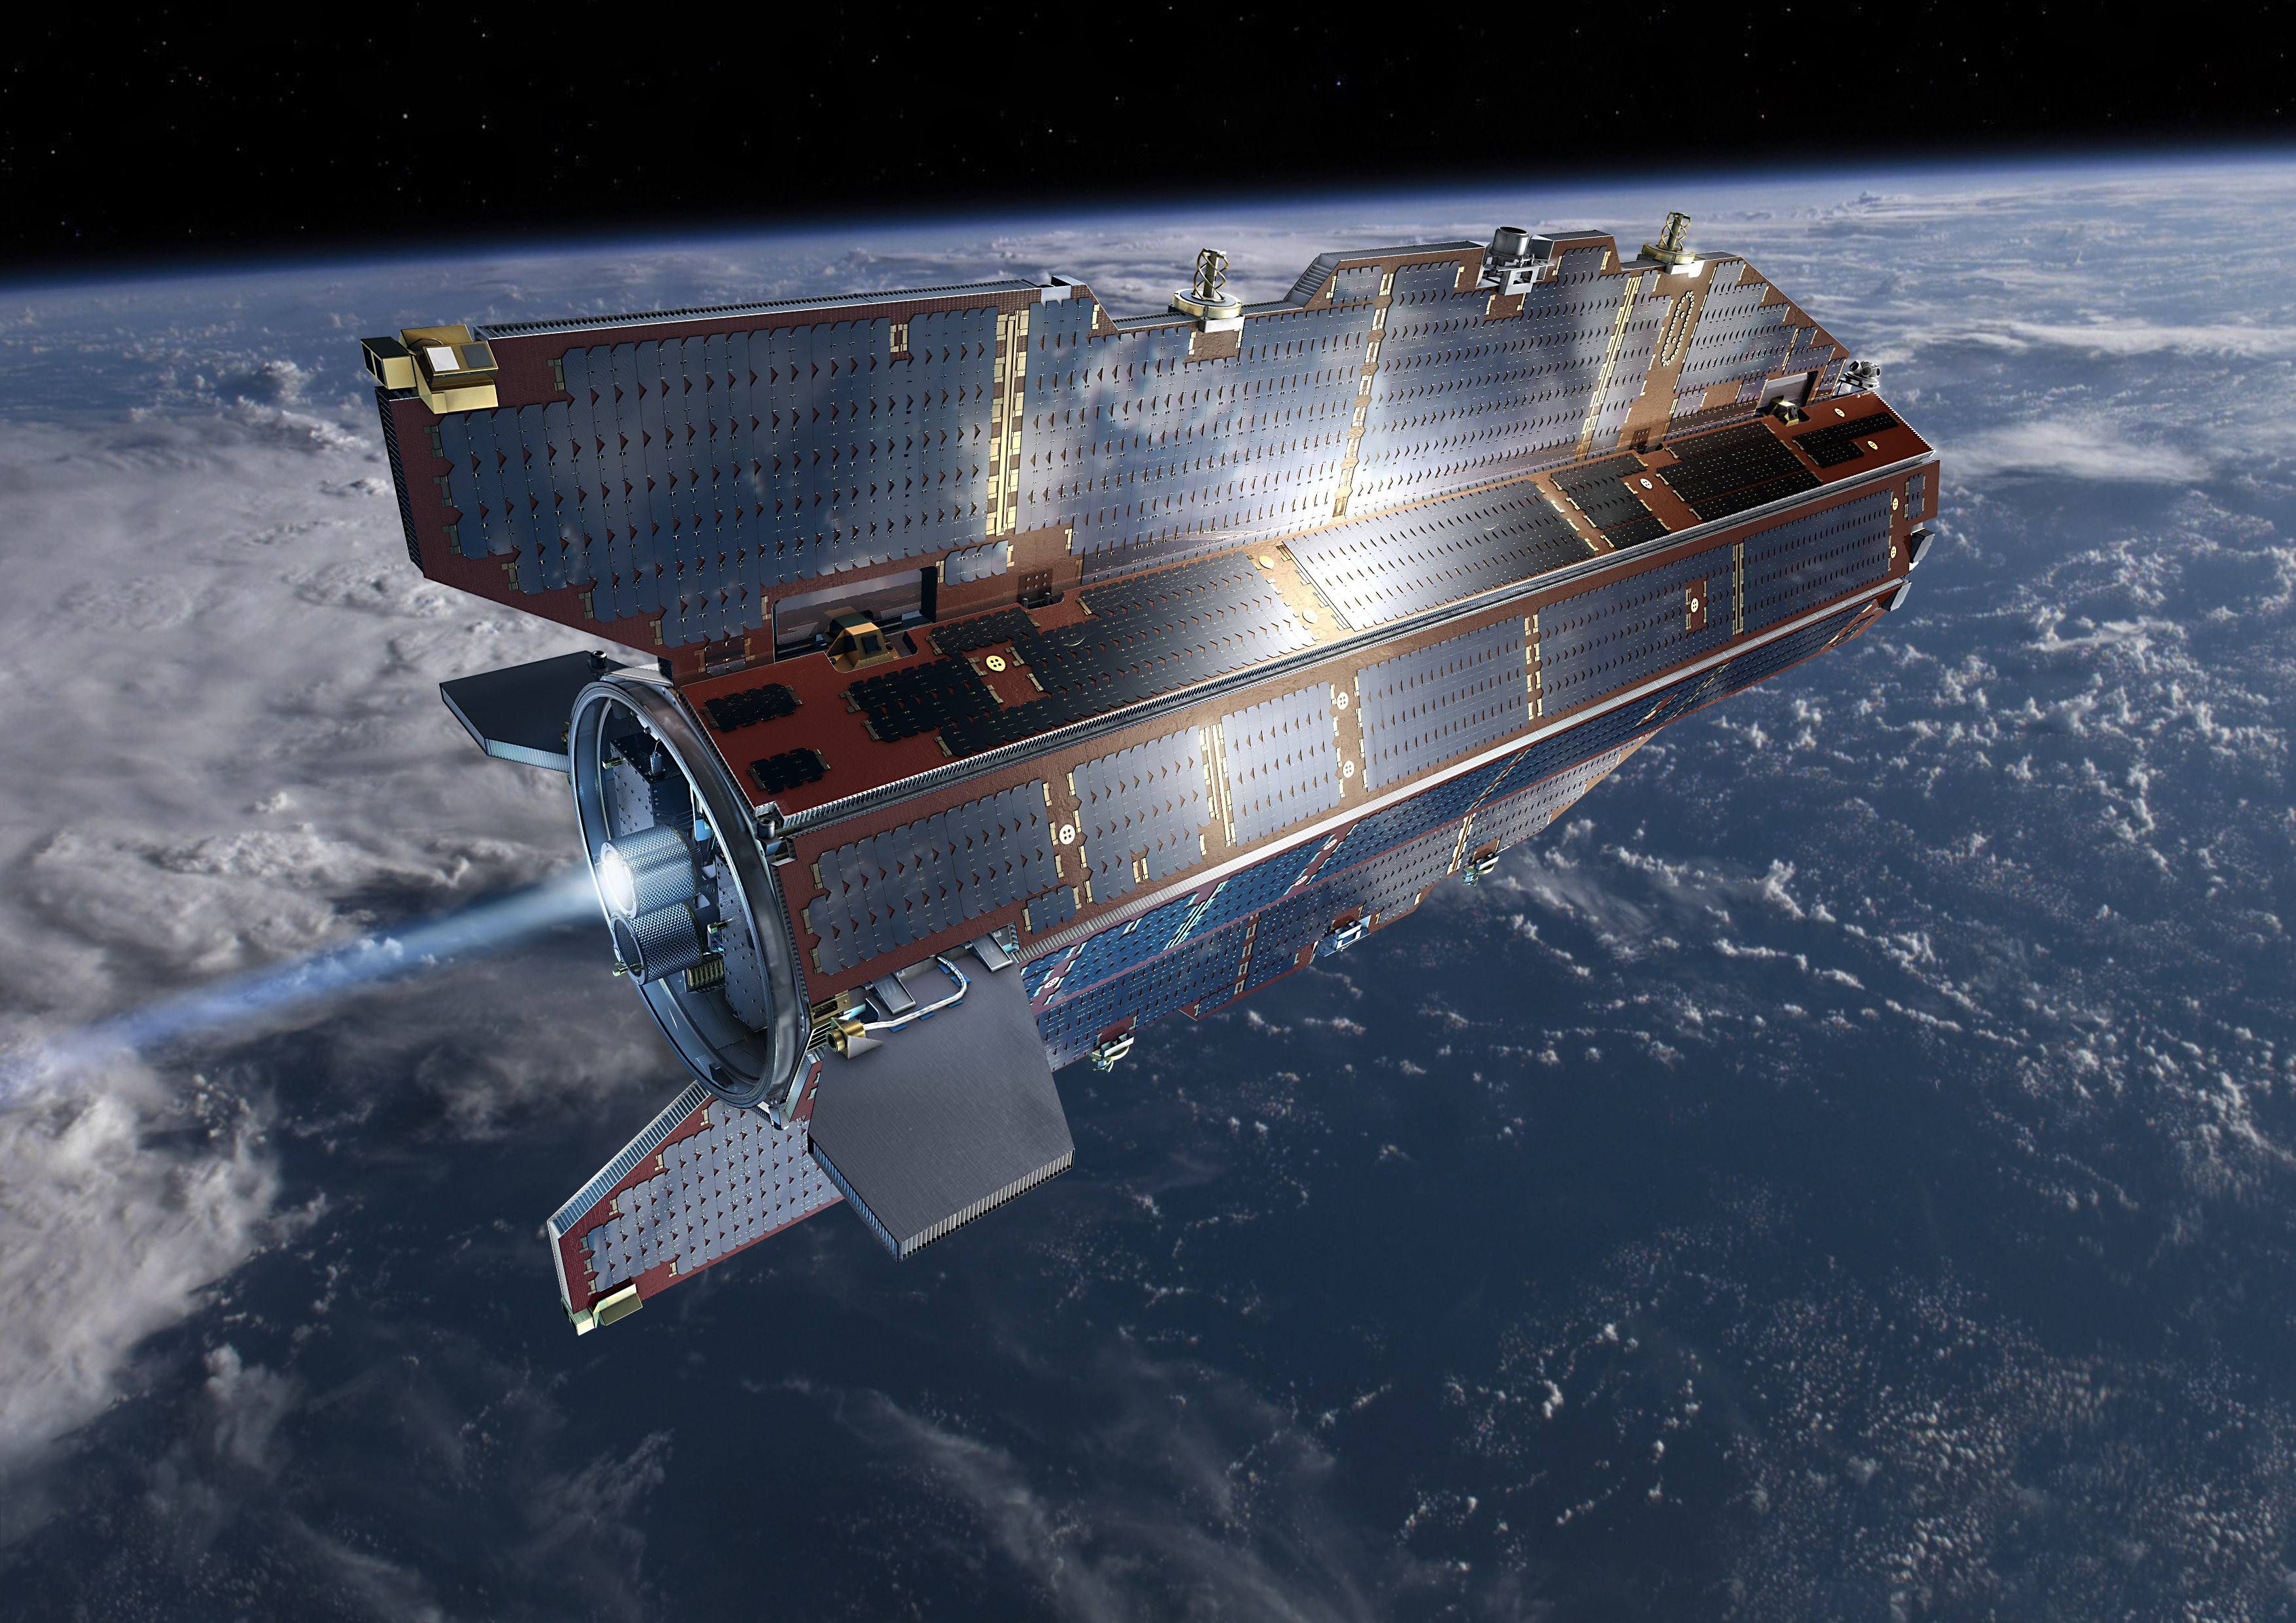 goce flight expected to end shortly � rocket science